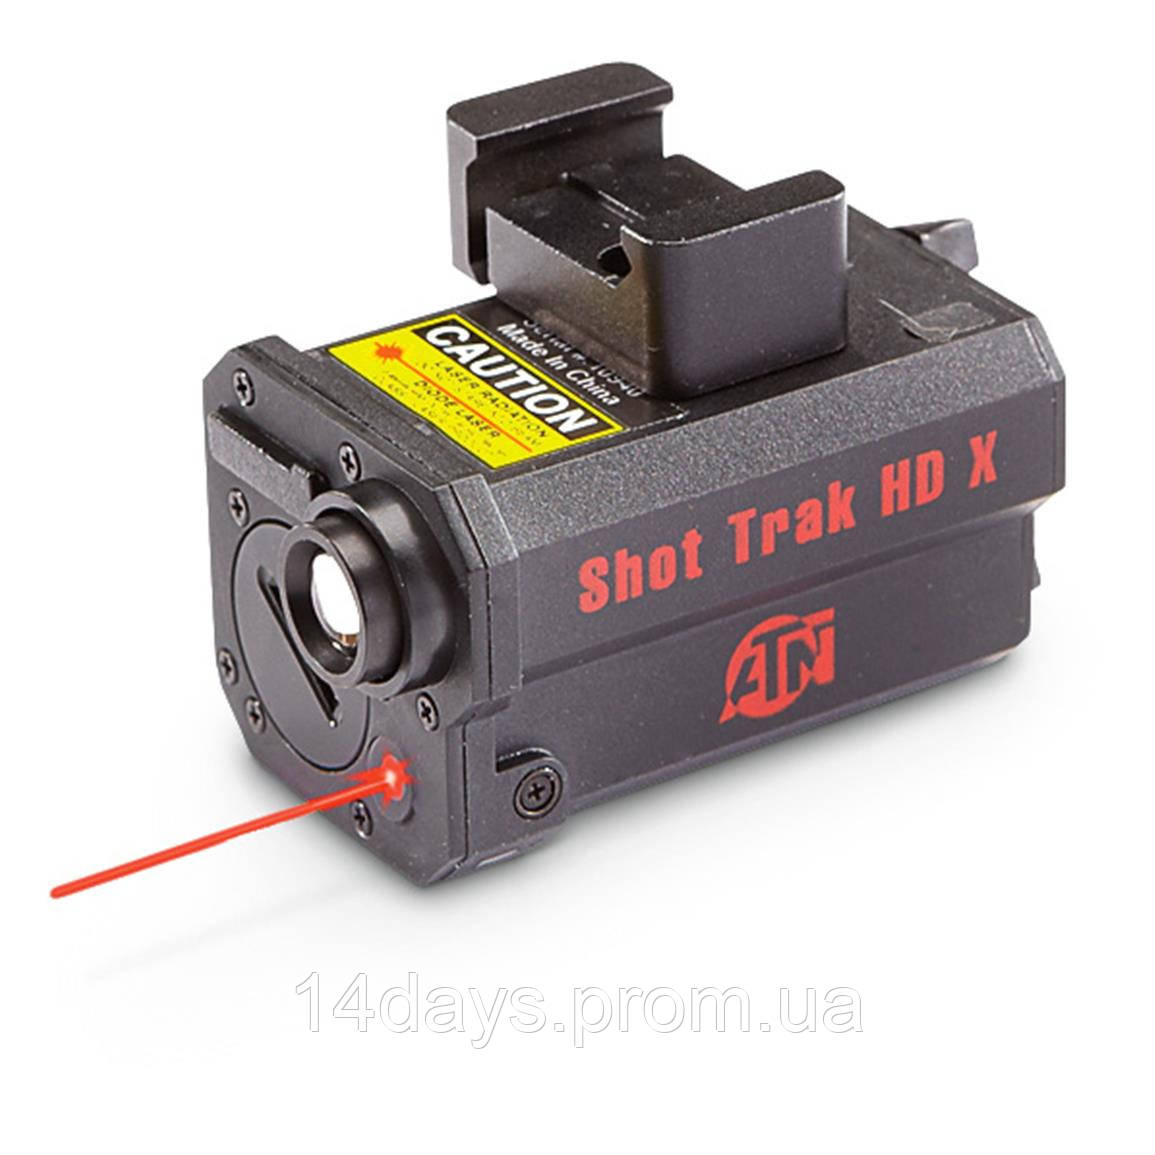 ATN Shot Trak-X HD